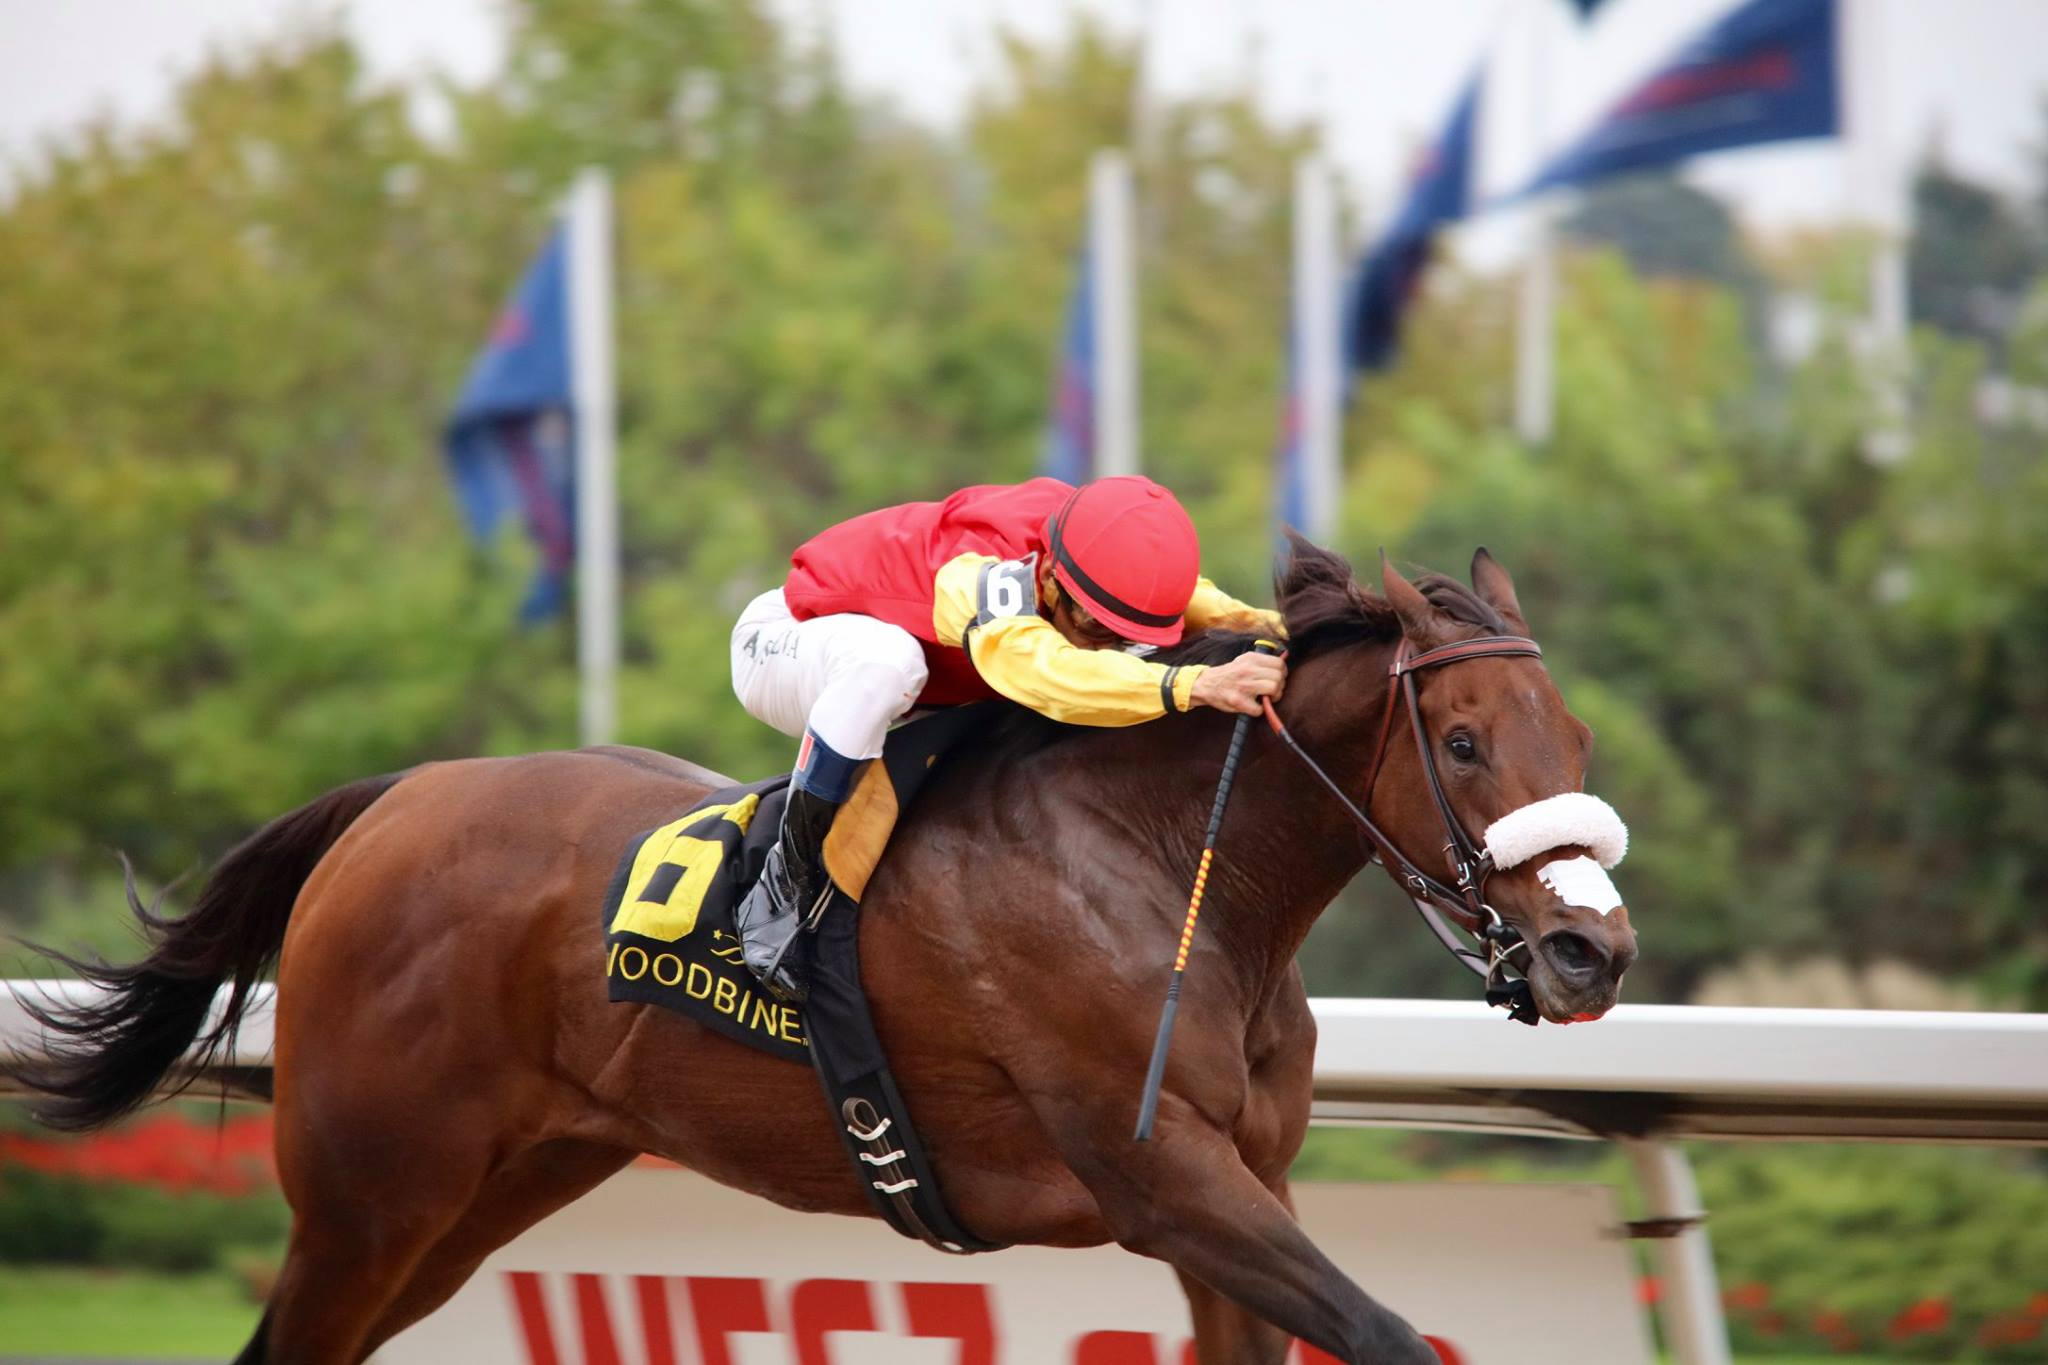 sOUTHERN rING - Speightstown / Seeking the Ring2019: B.F. x Uncle Mo